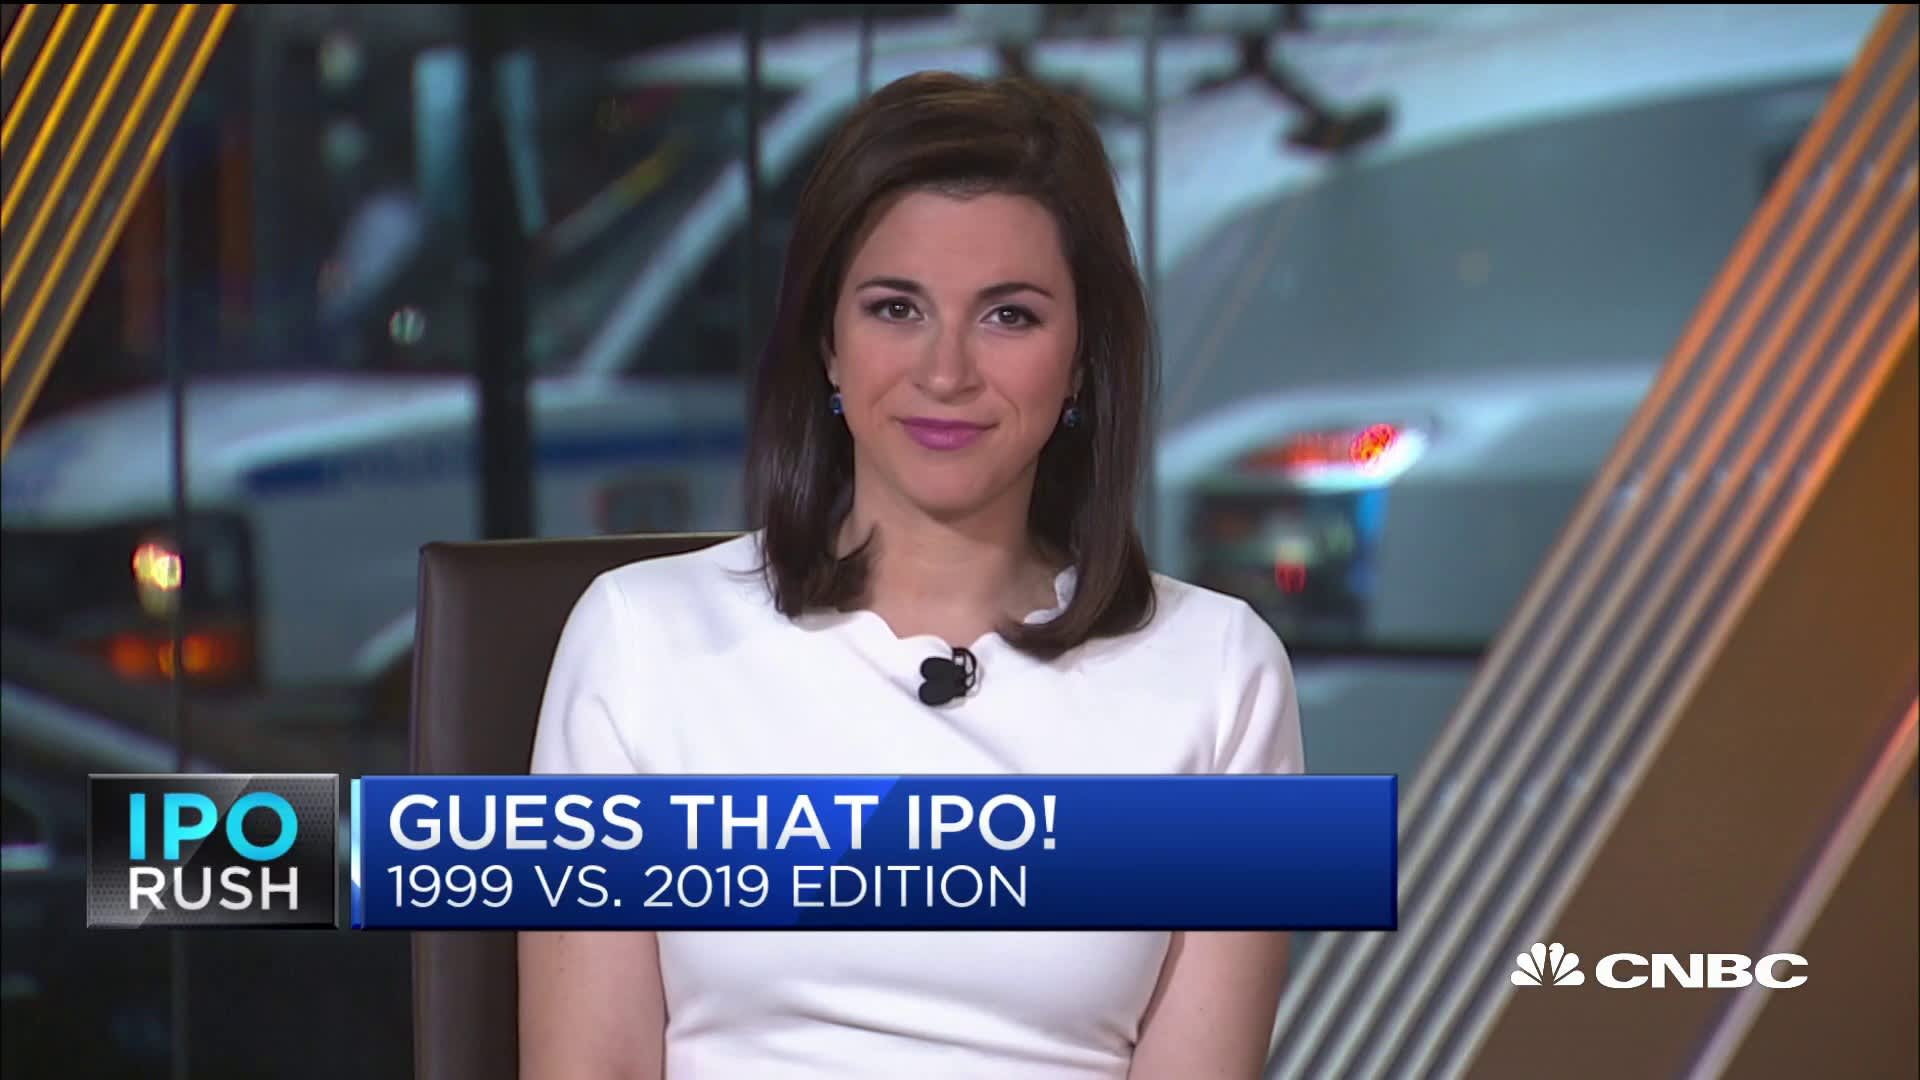 Squawk Box: Business, Politics, Investors and Traders